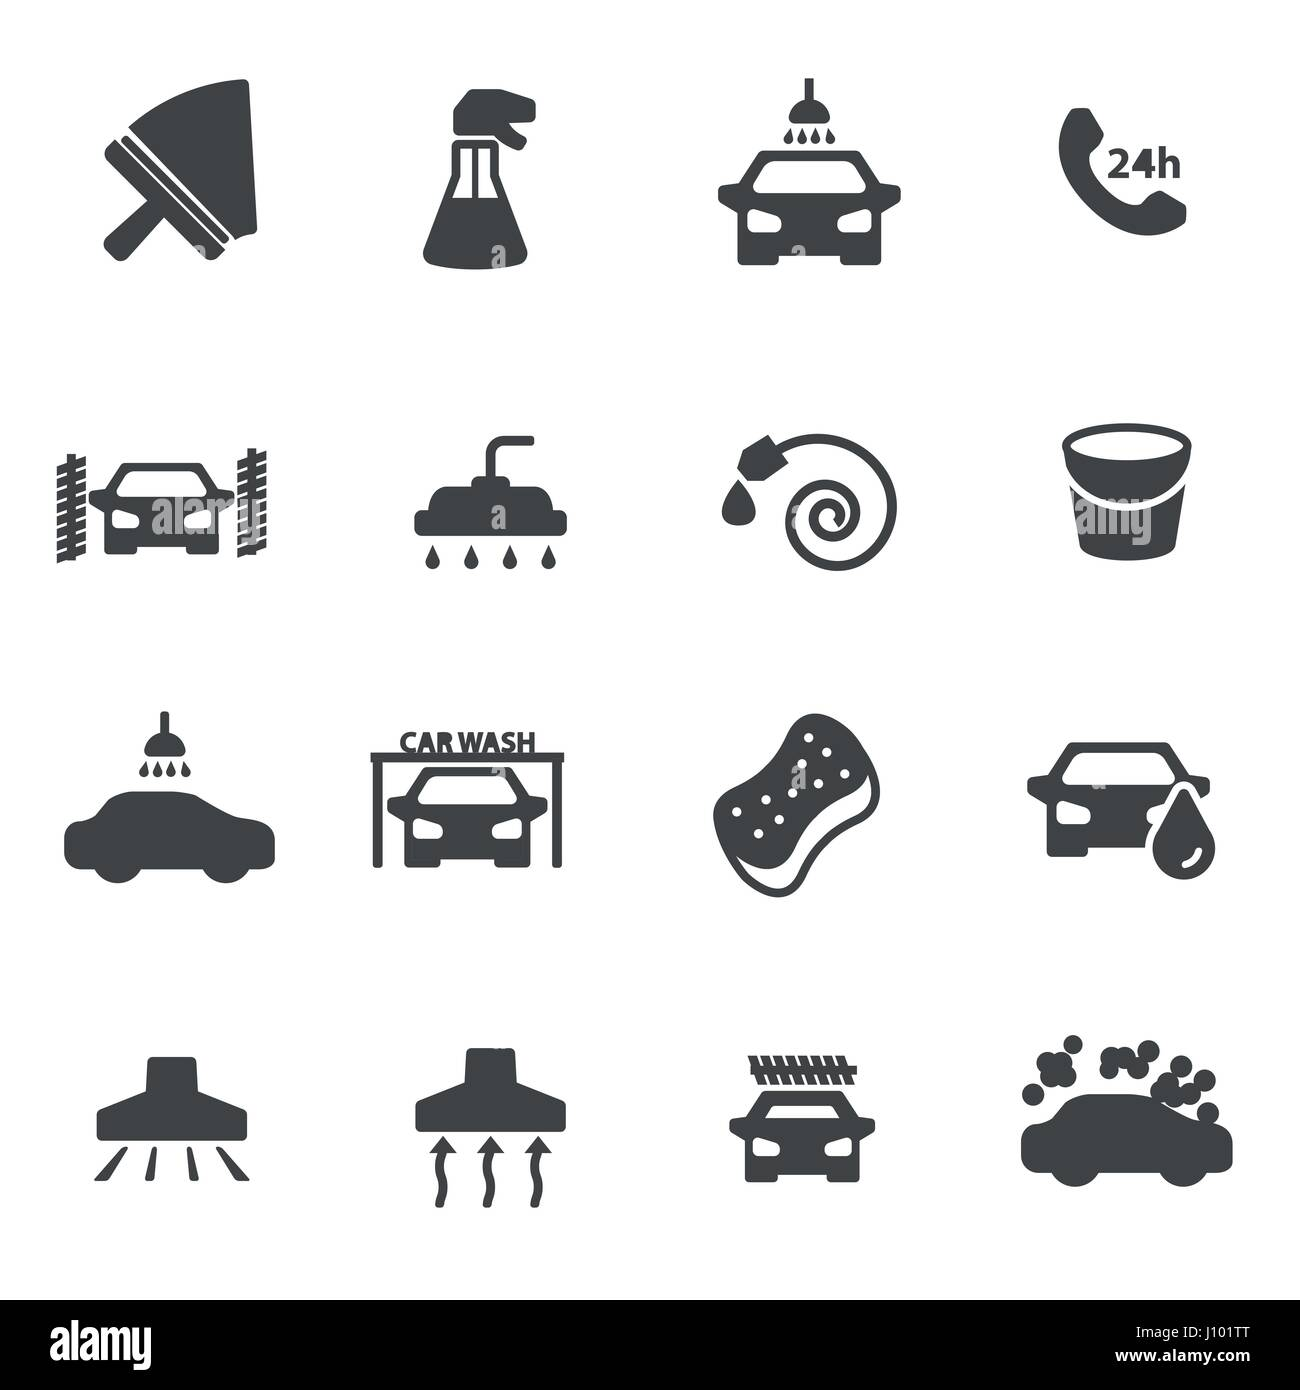 Vector Black Car Wash Icons Set On White Background Stock Vector Art